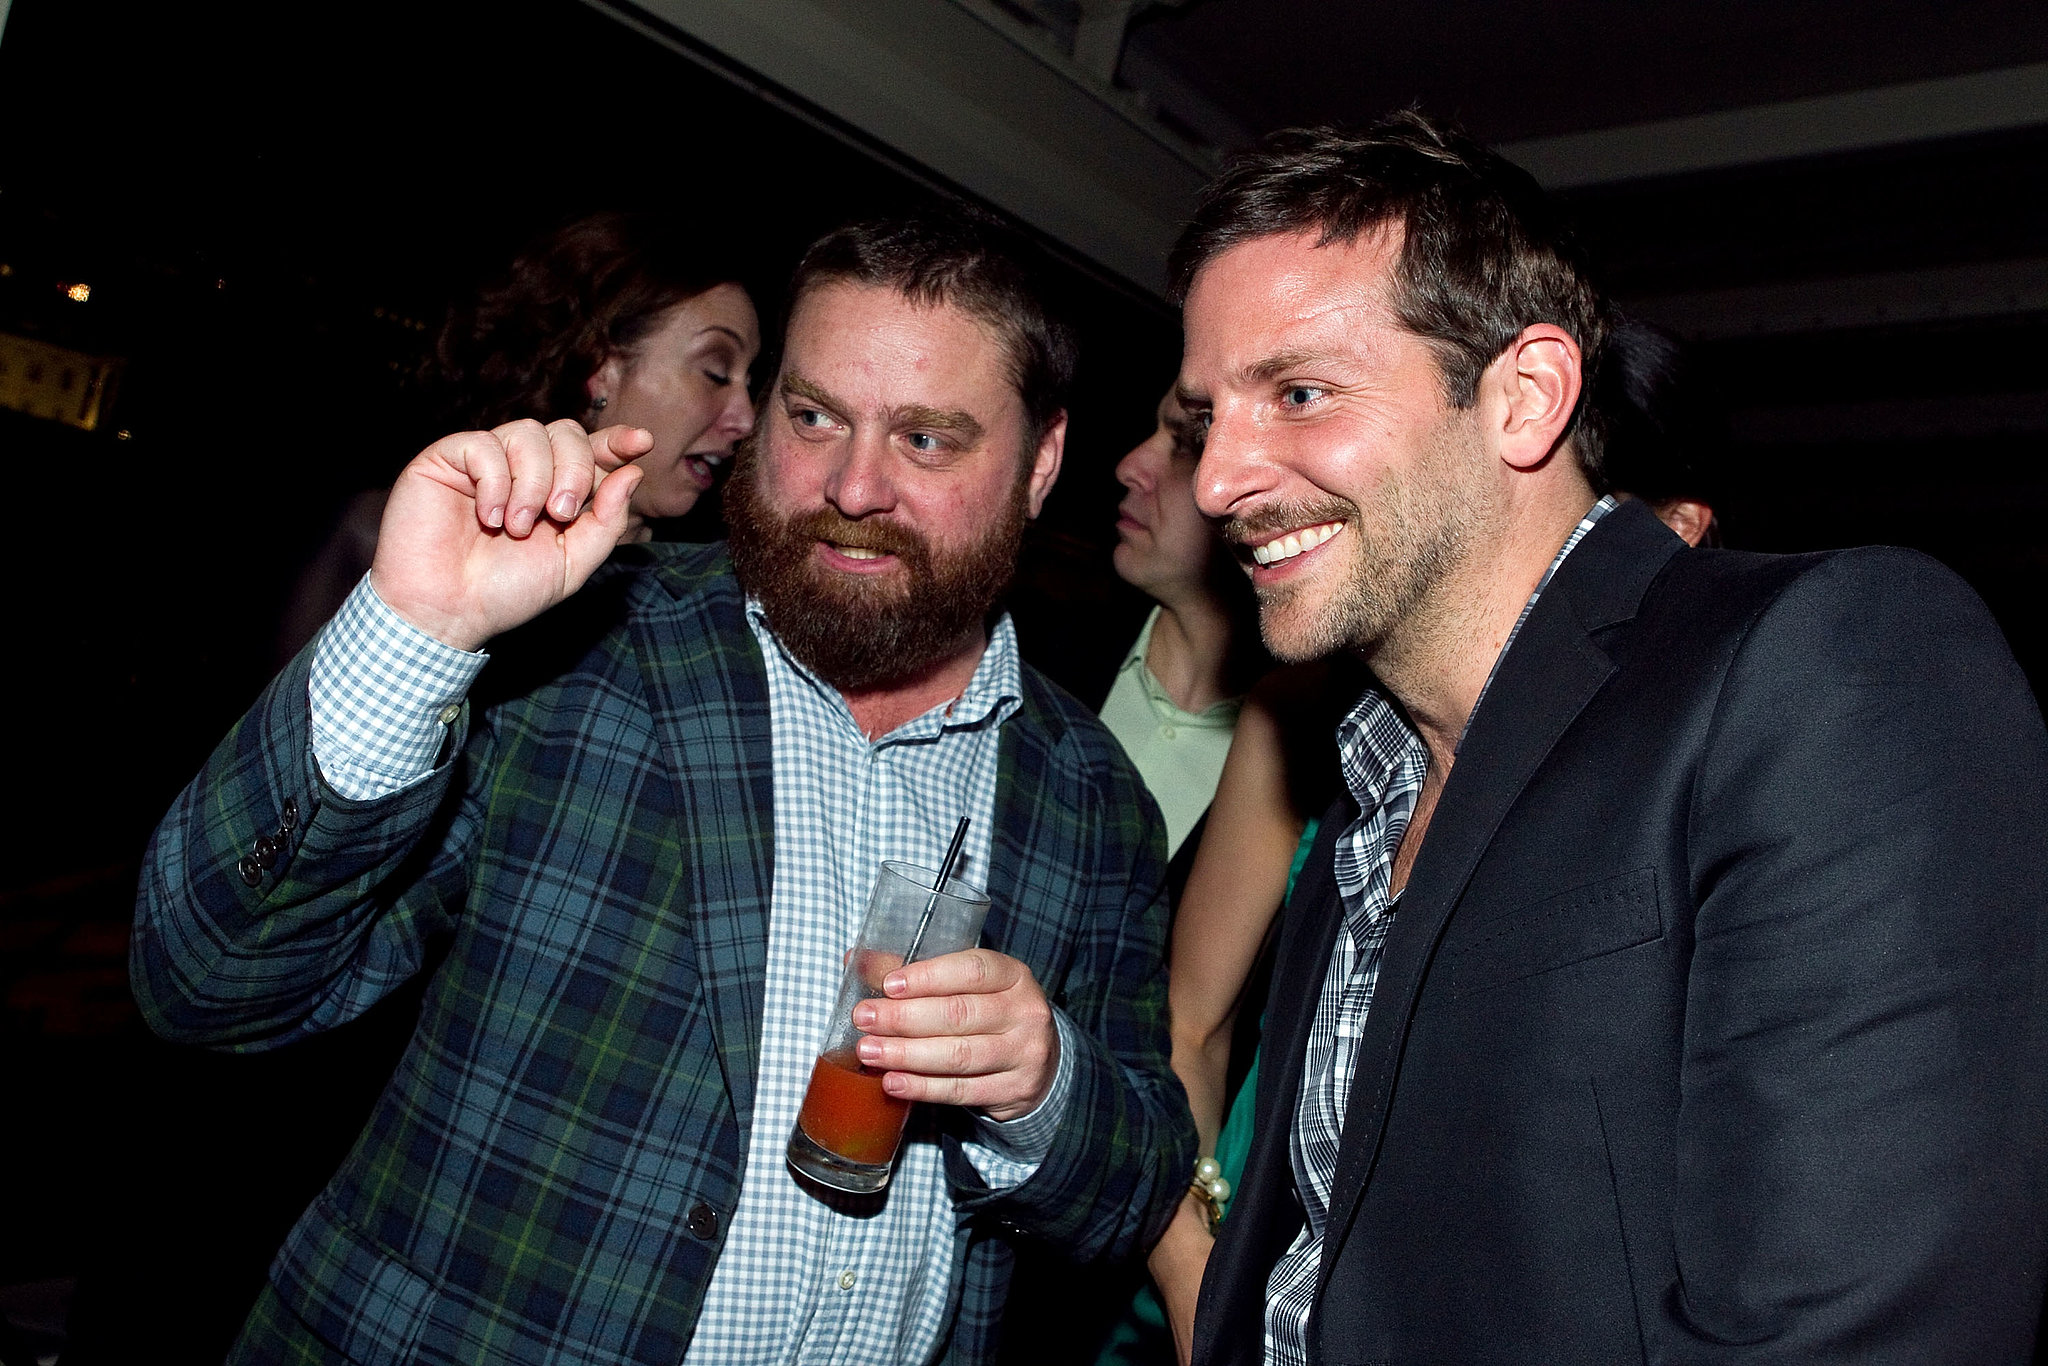 Zach Galifianakis and Bradley Cooper were